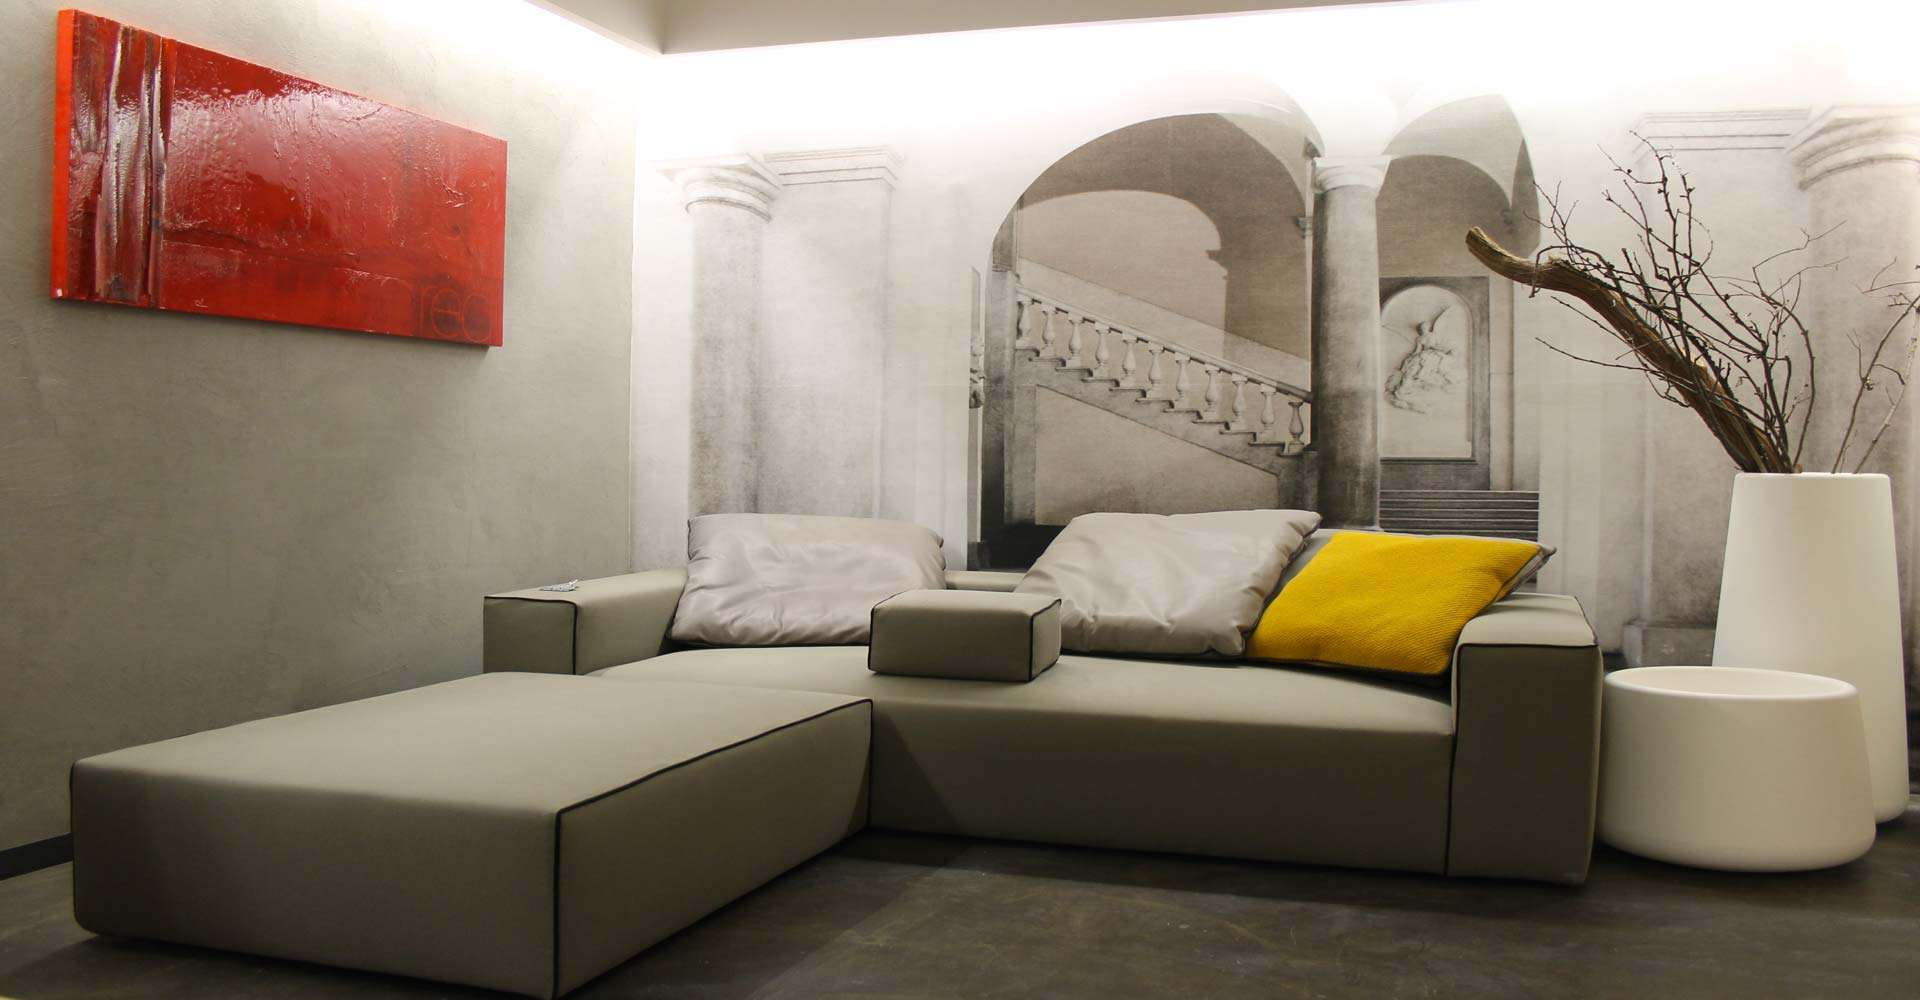 Interior design, divano Moroso. Qubico showroom, Como.